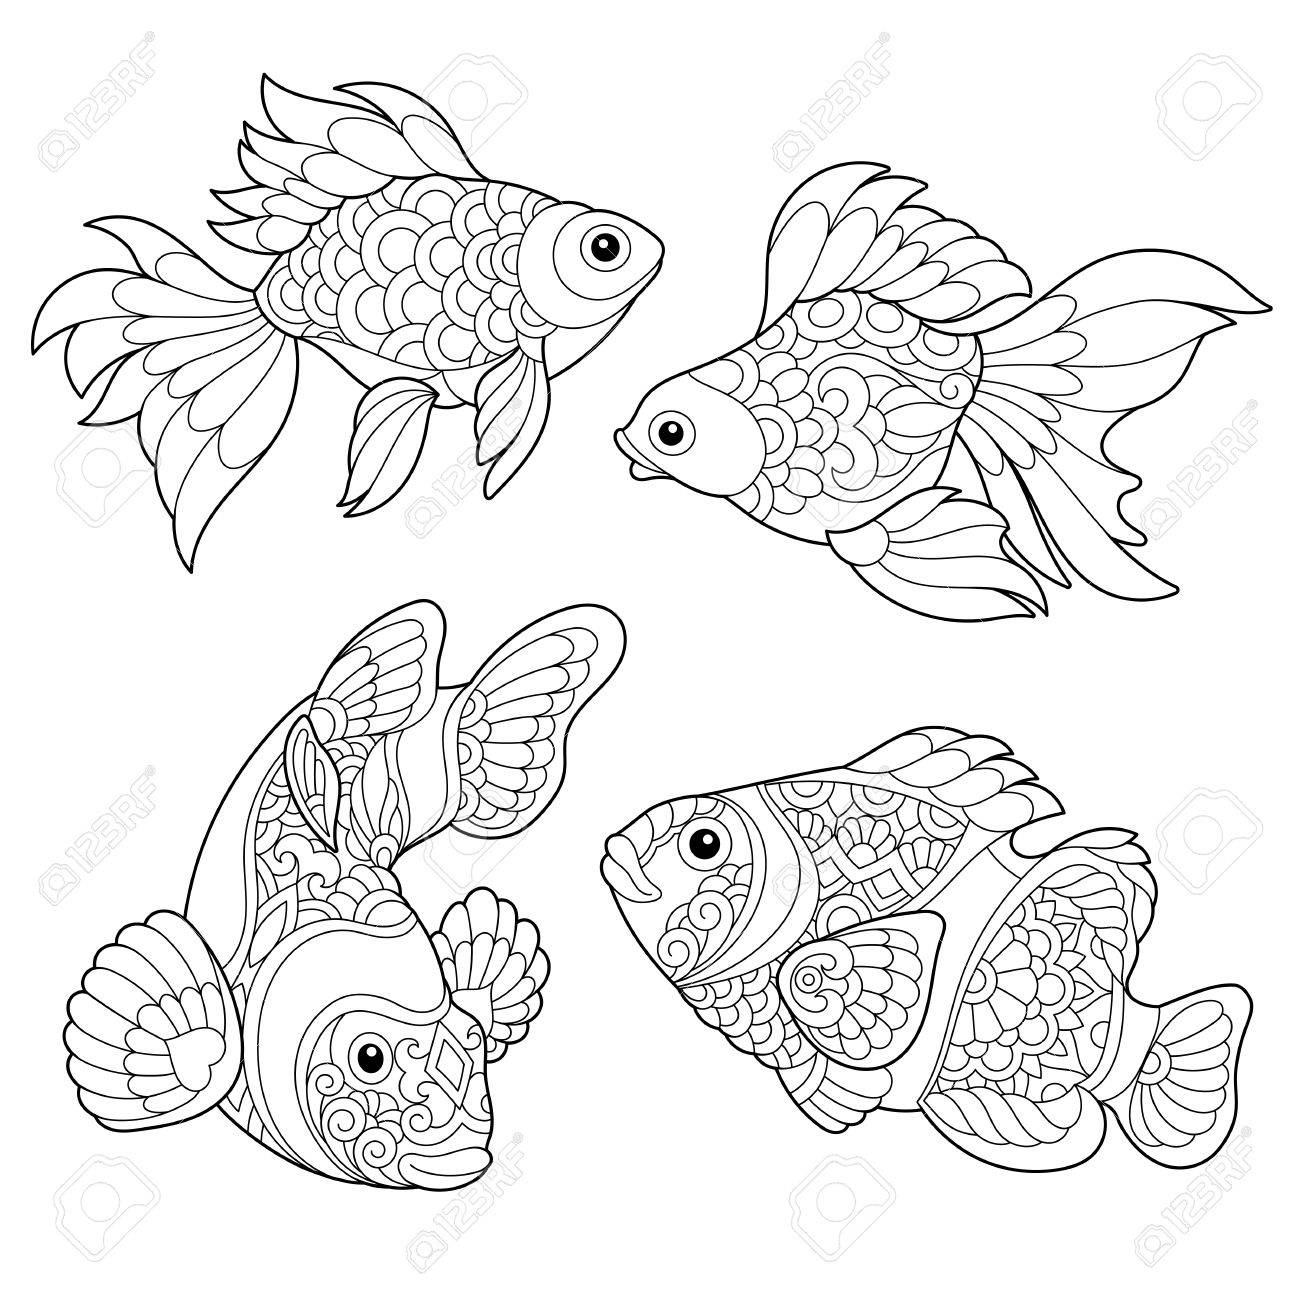 how do you draw a clown fish easy drawing for kids fish drawing ideas collection a you draw how fish clown do